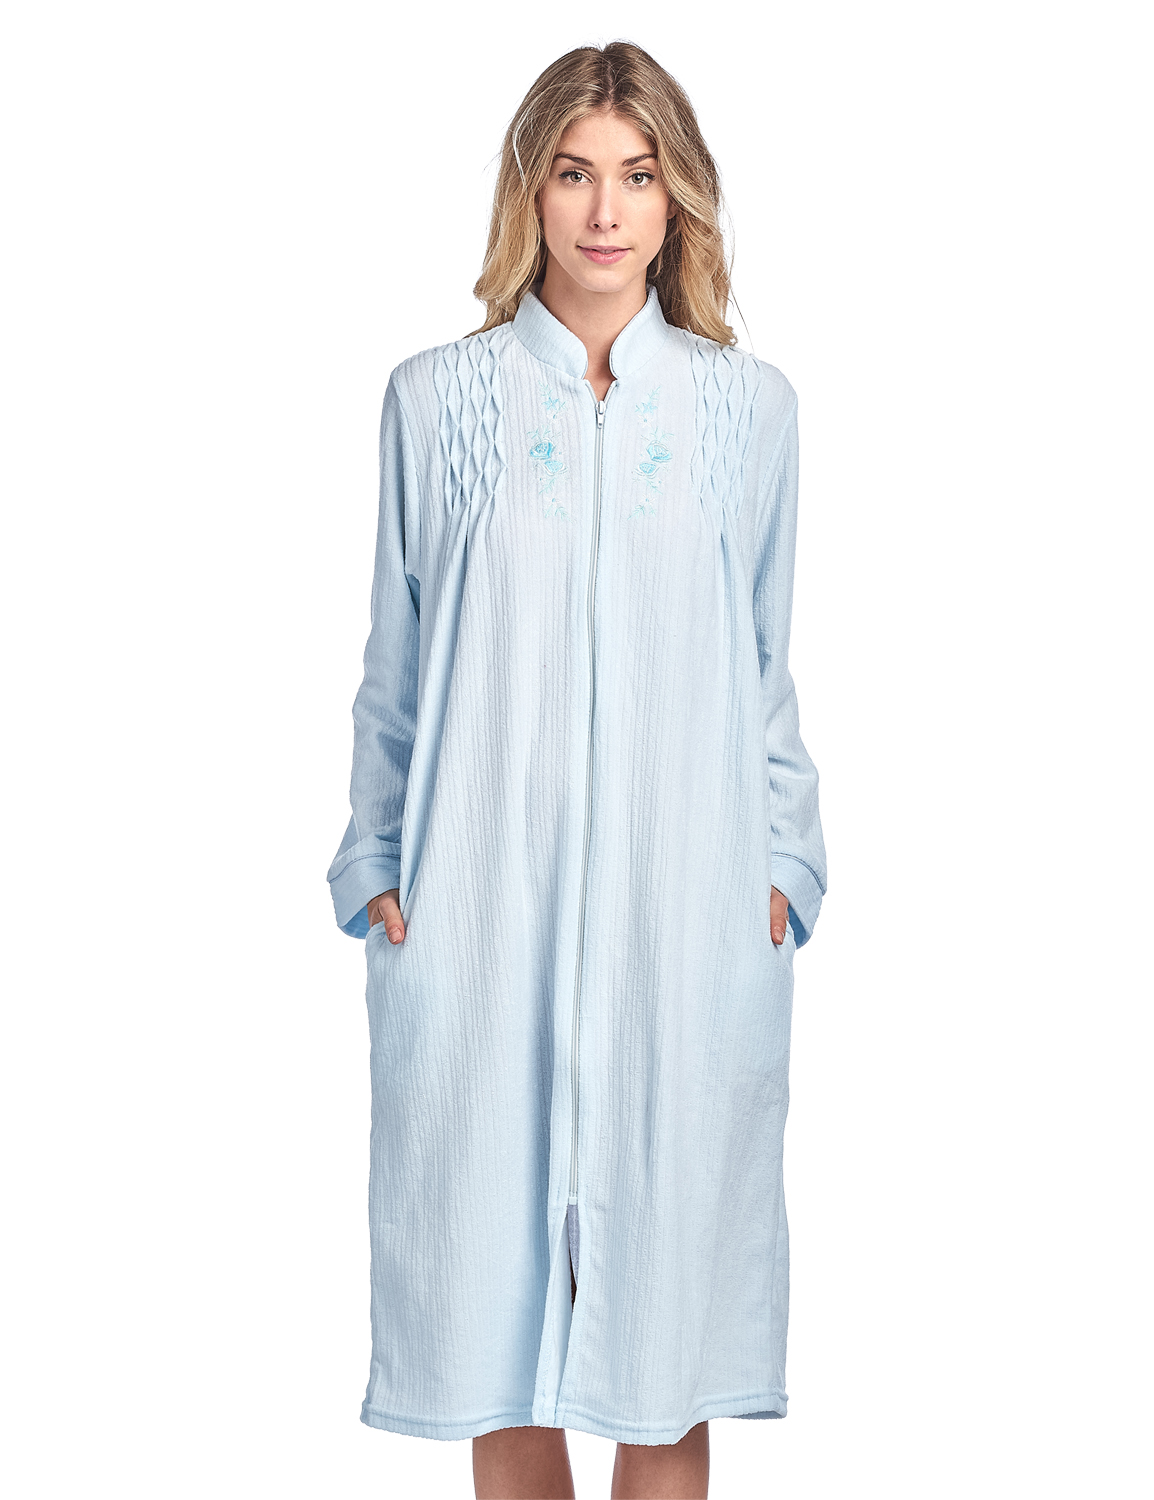 Casual Nights Women's Zipper Front Jacquard Terry Fleece Robe Duster - Blue - X-Large